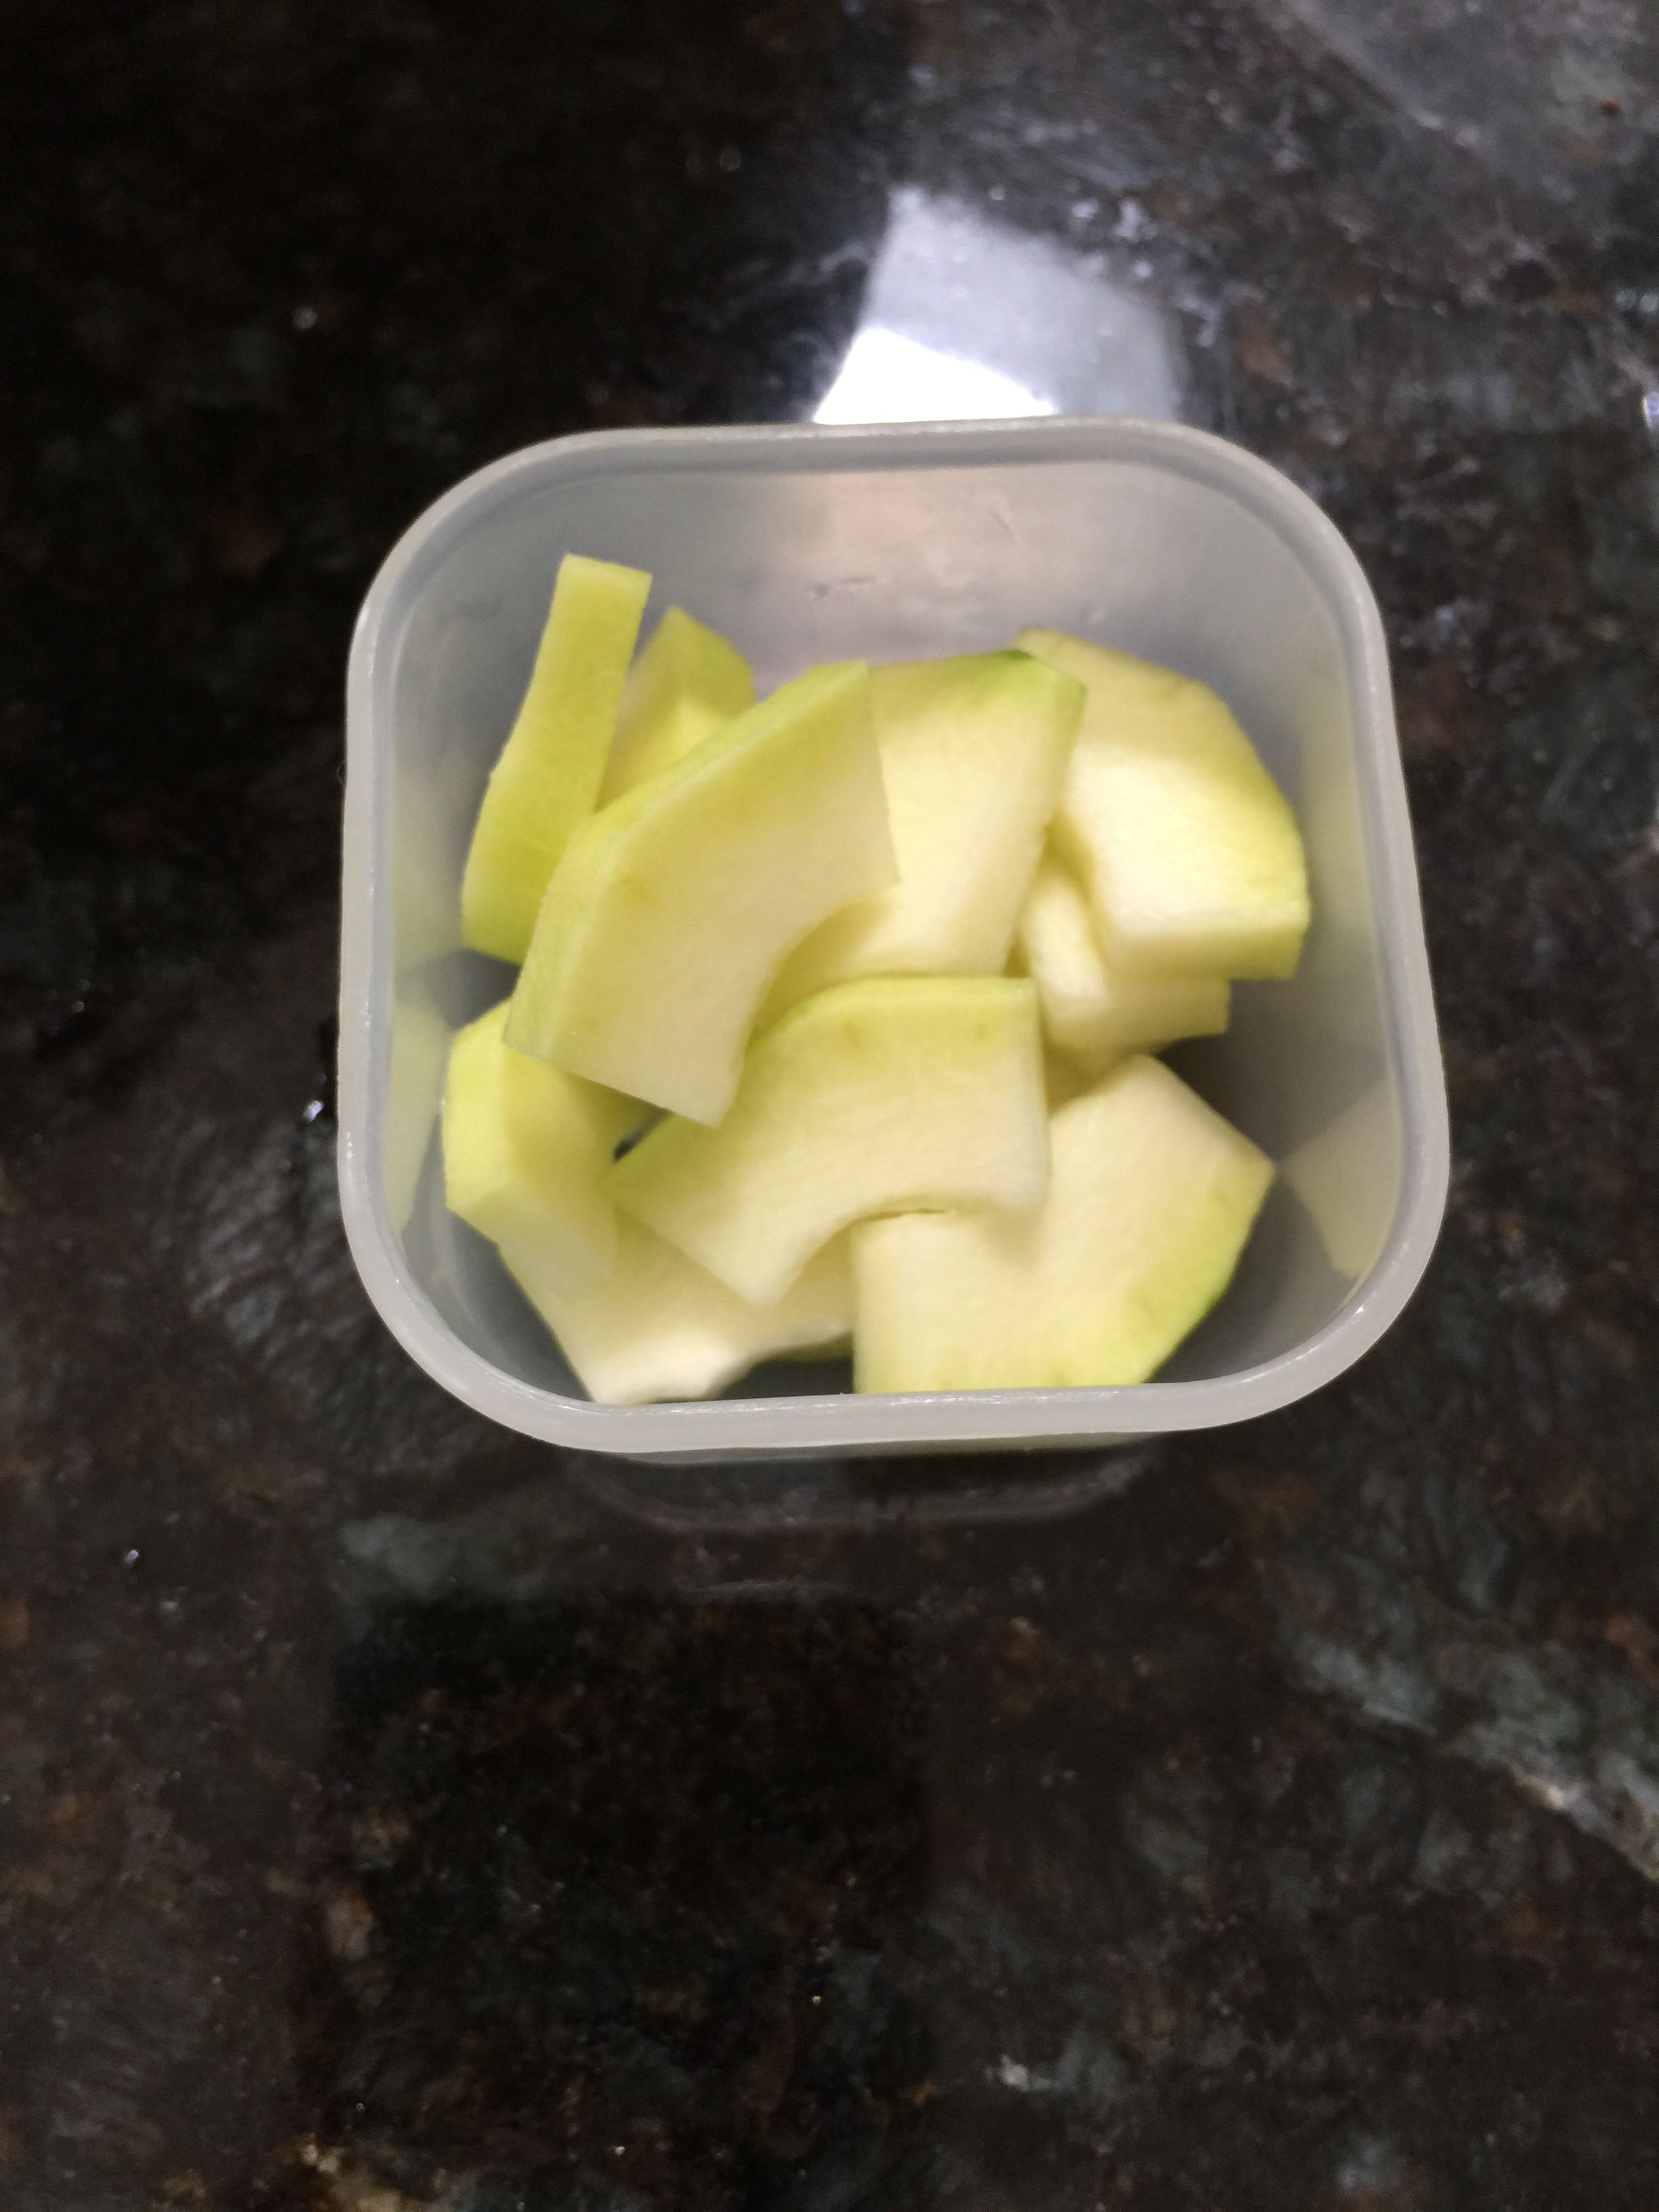 Pin by Lisa Tozier on canning   Apple pies filling, Canning ...